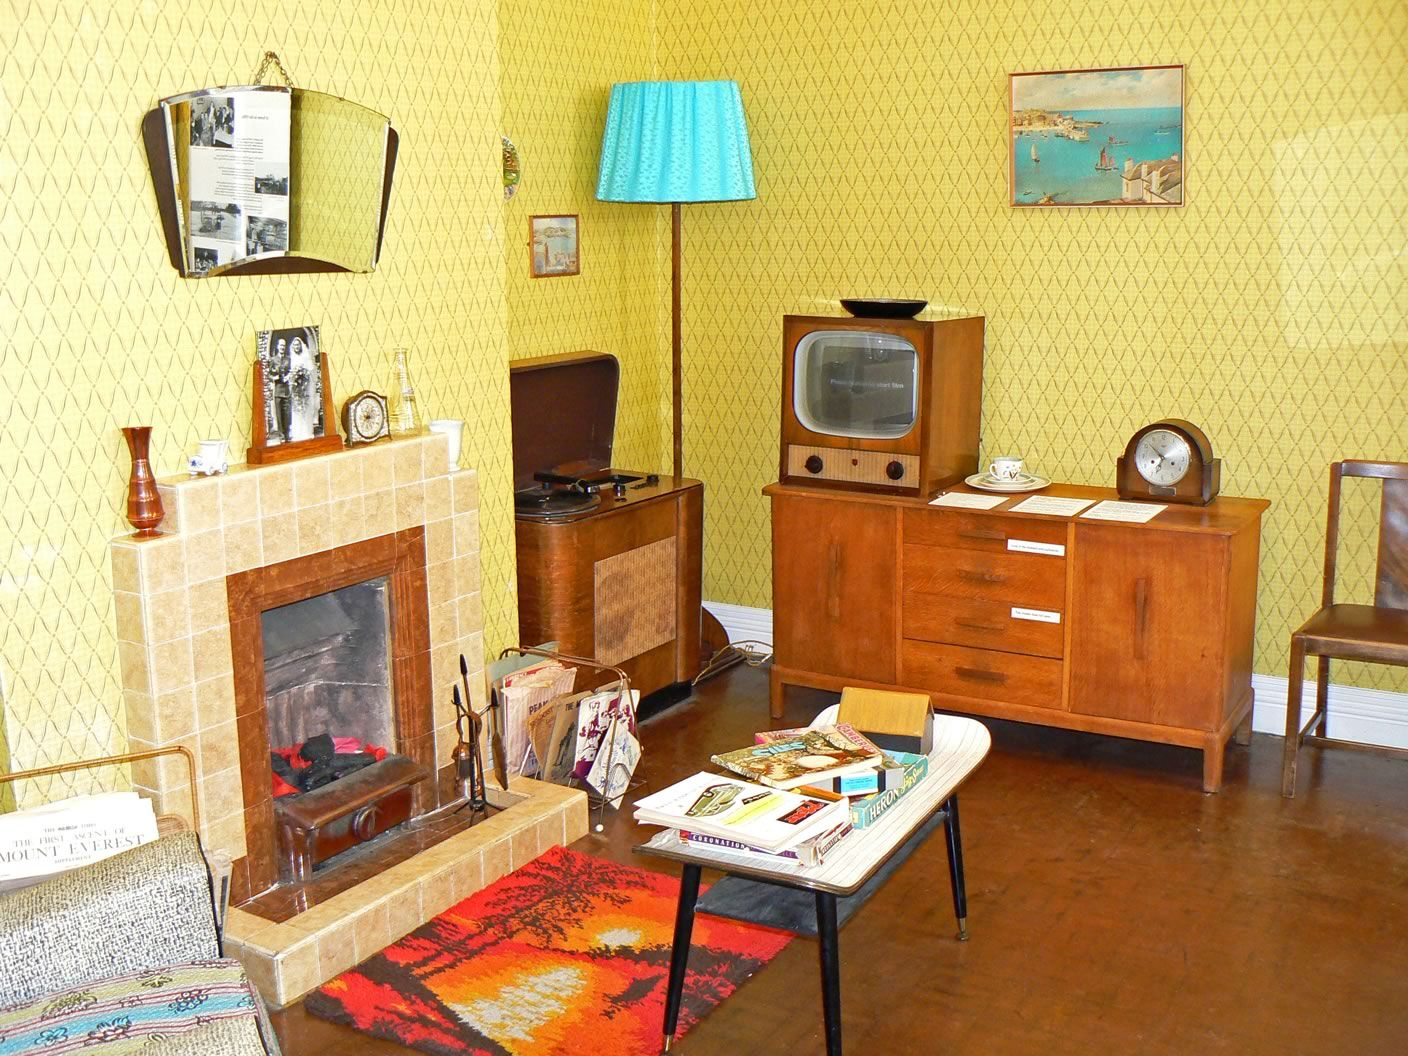 1950s Room At The Museum Of Lynn Life In Kingu0027s Lynn, Norfolk. The Living Part 45